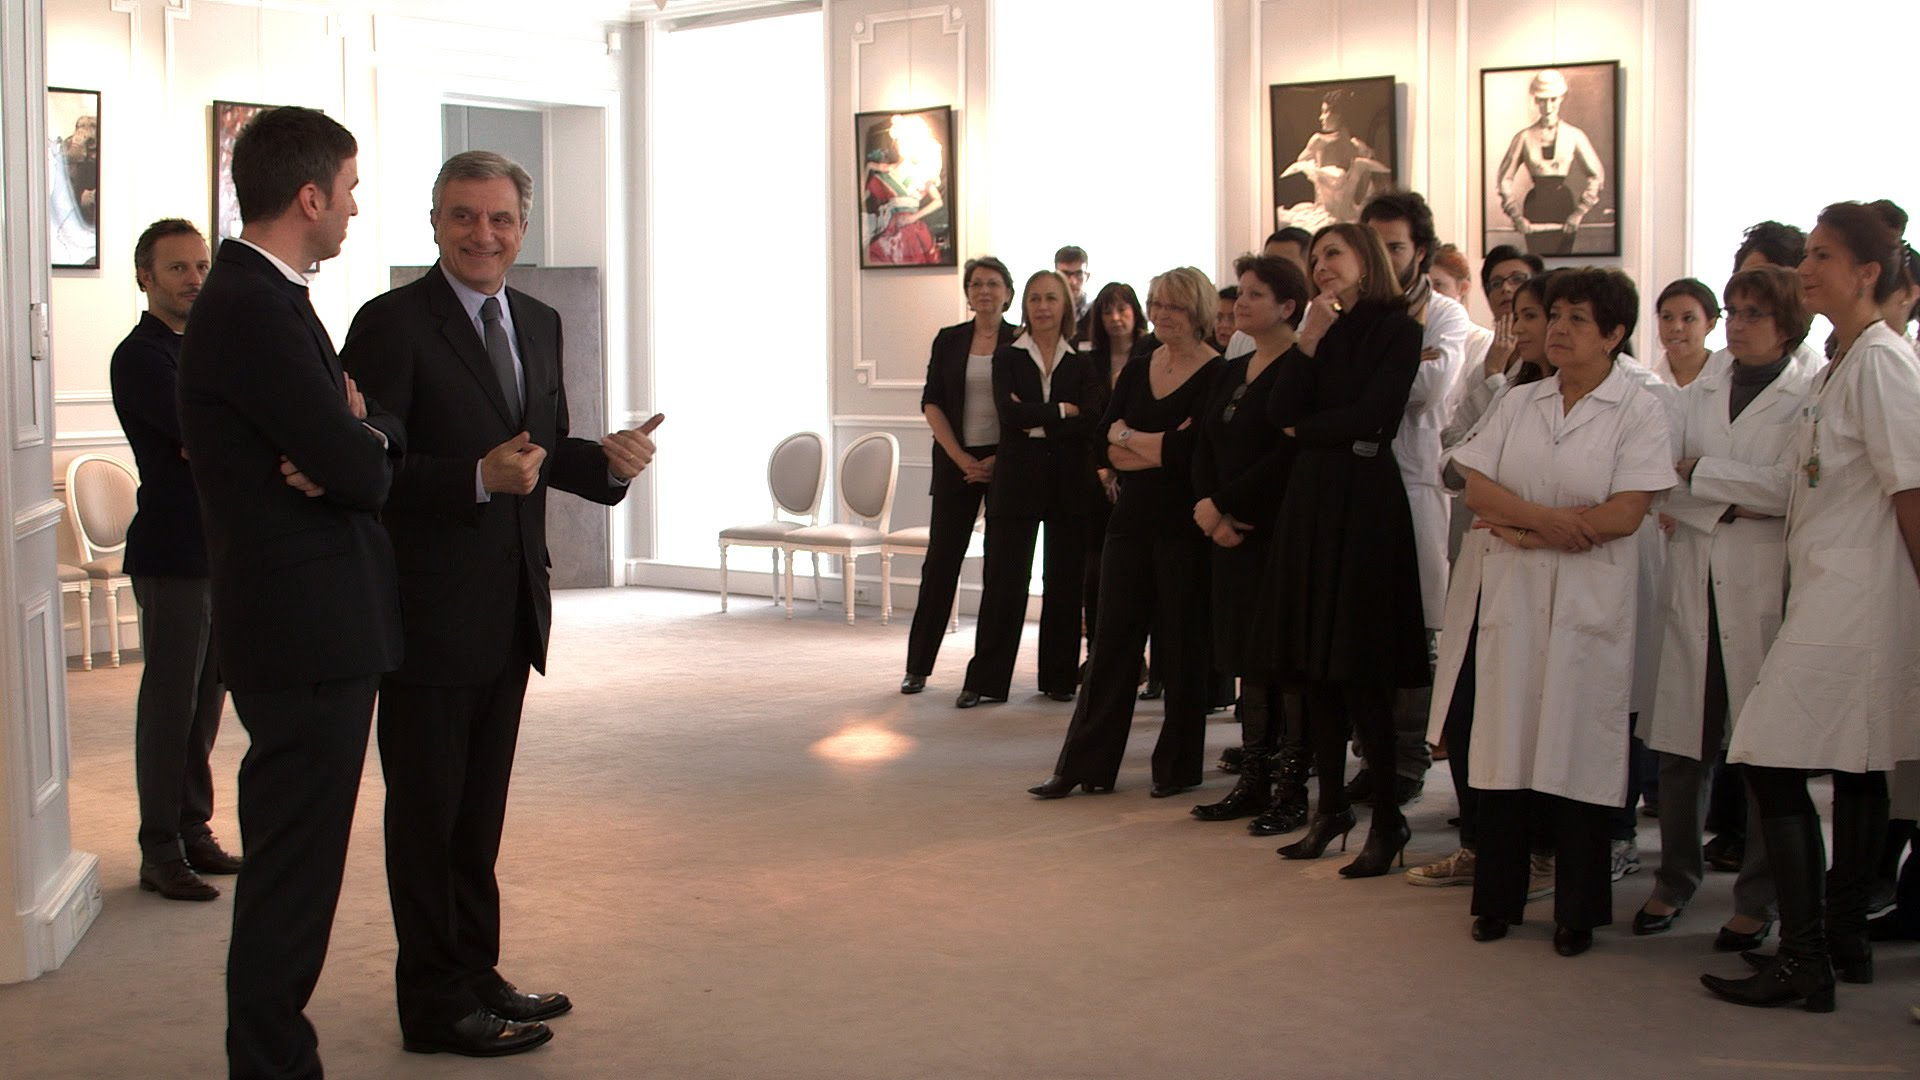 Raf Simons is introduced to Dior staff.